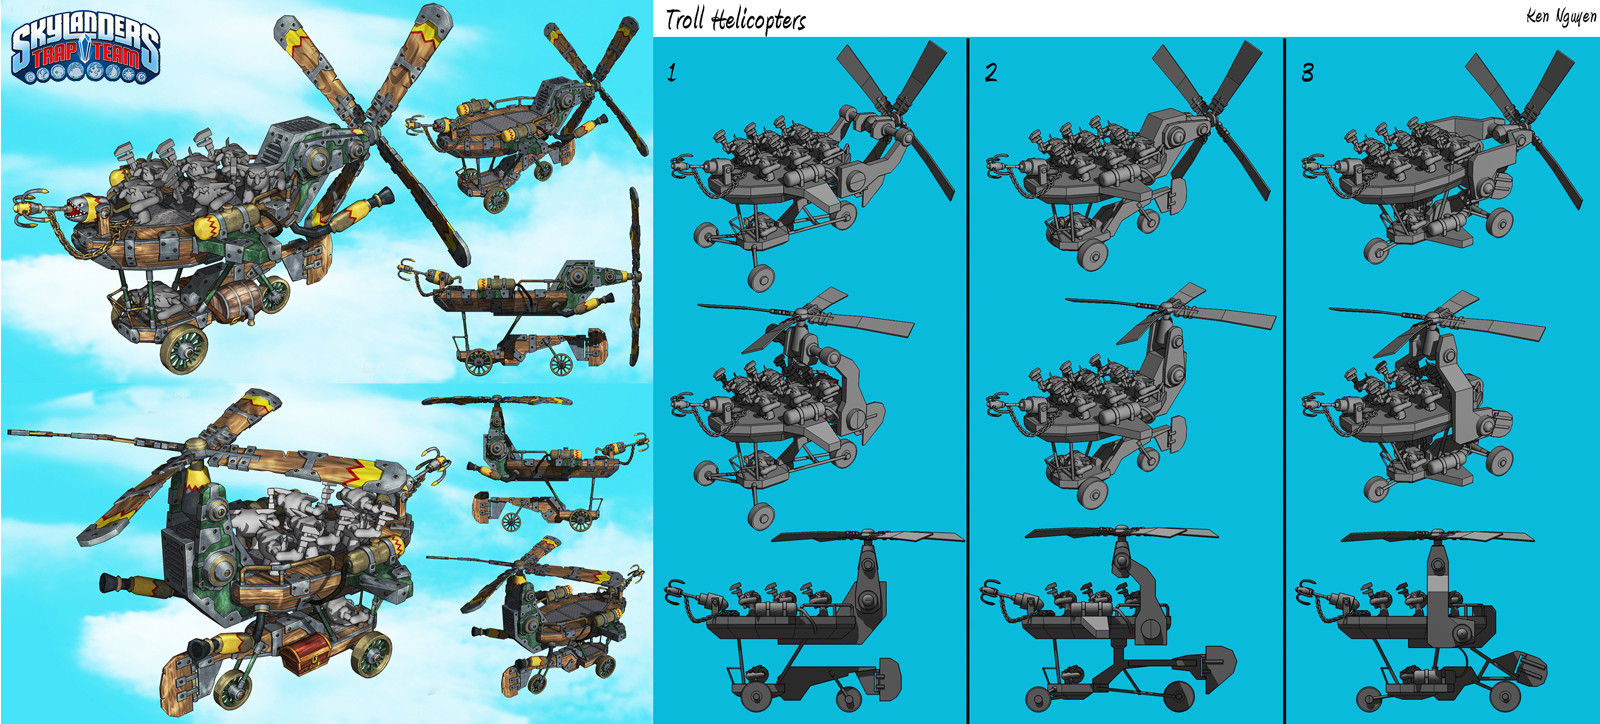 helicopter projects with M5zjy on Make A Whirly Bird From Paper besides Heli Lift 3 in addition M5zJY moreover Propeller 20clipart likewise File Bell 407 G C3 B3raszka 2.